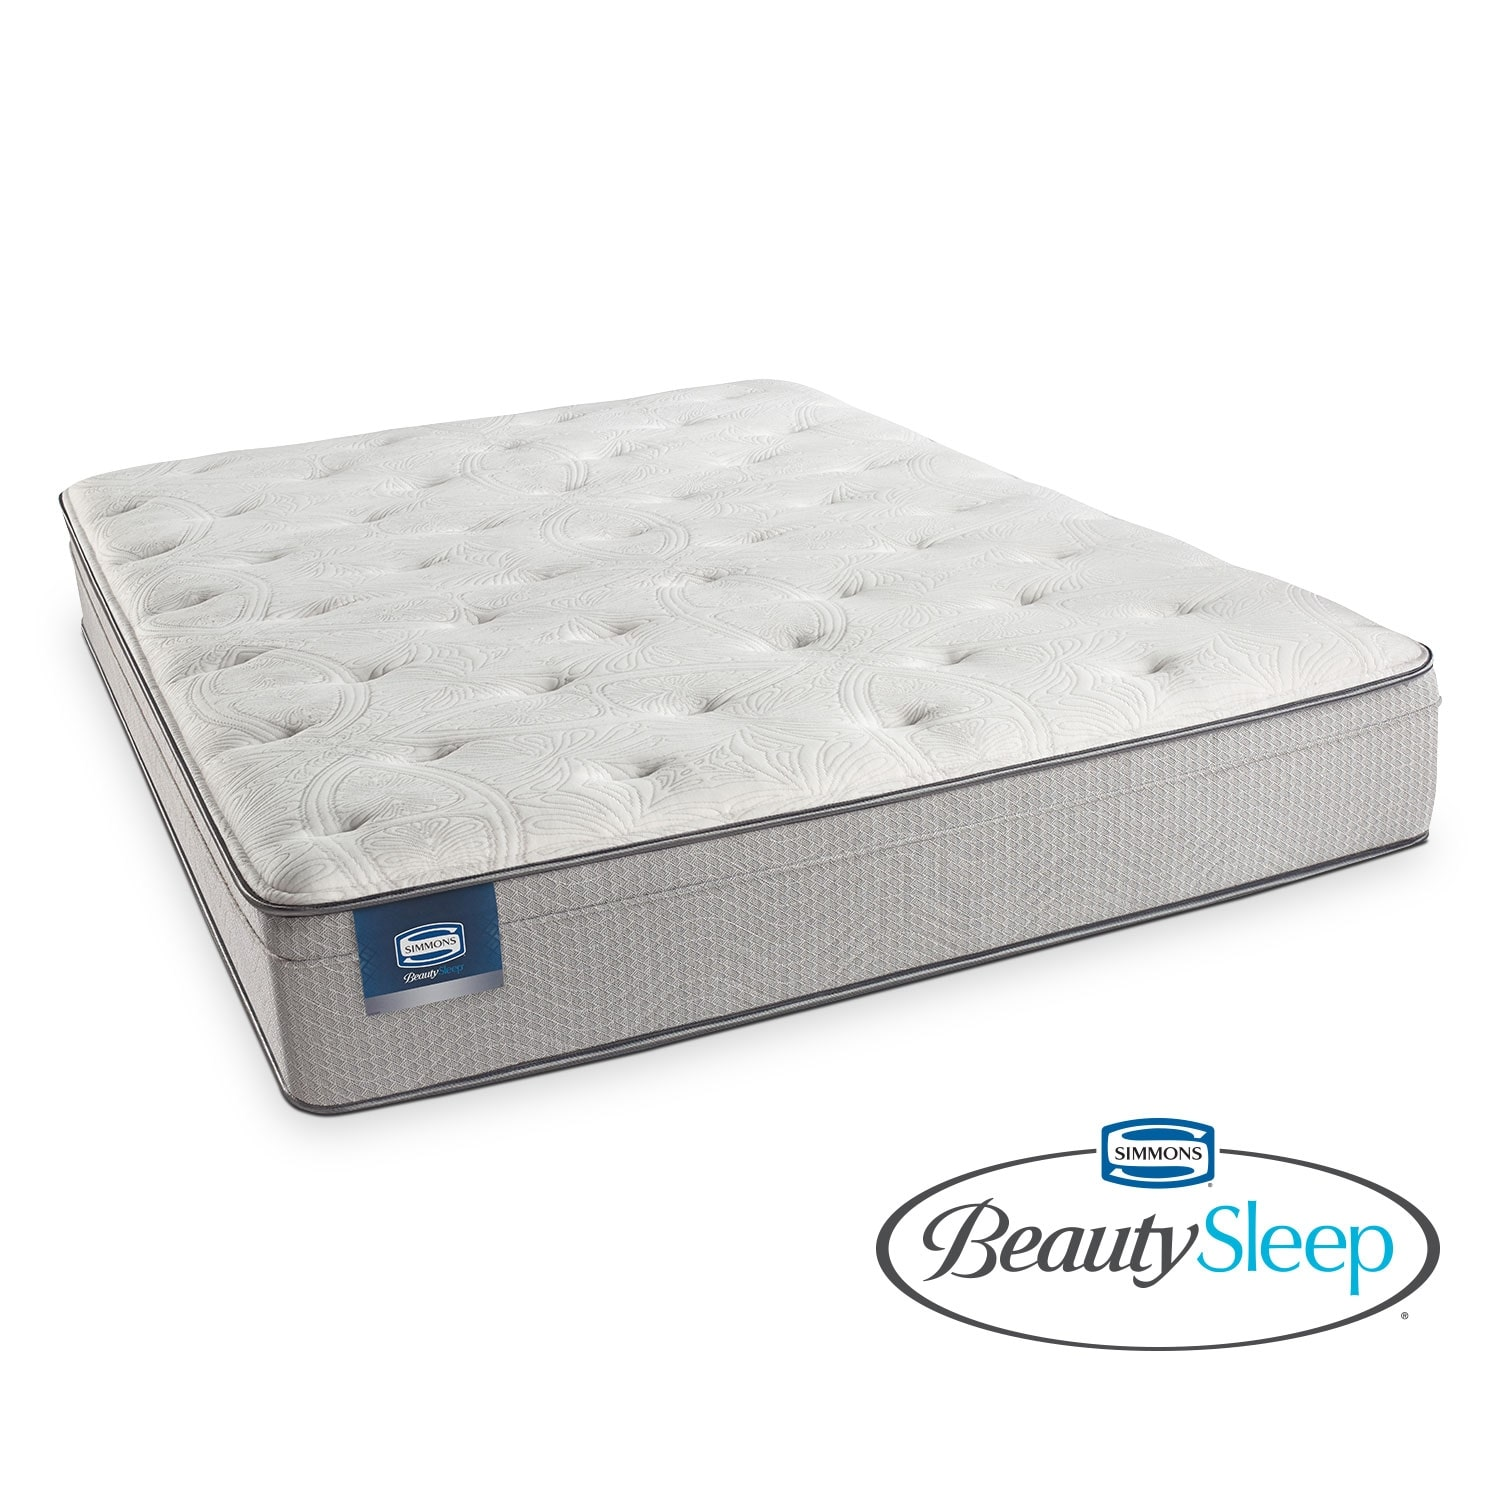 Mattresses and Bedding - Canal St. Plush Twin XL Mattress